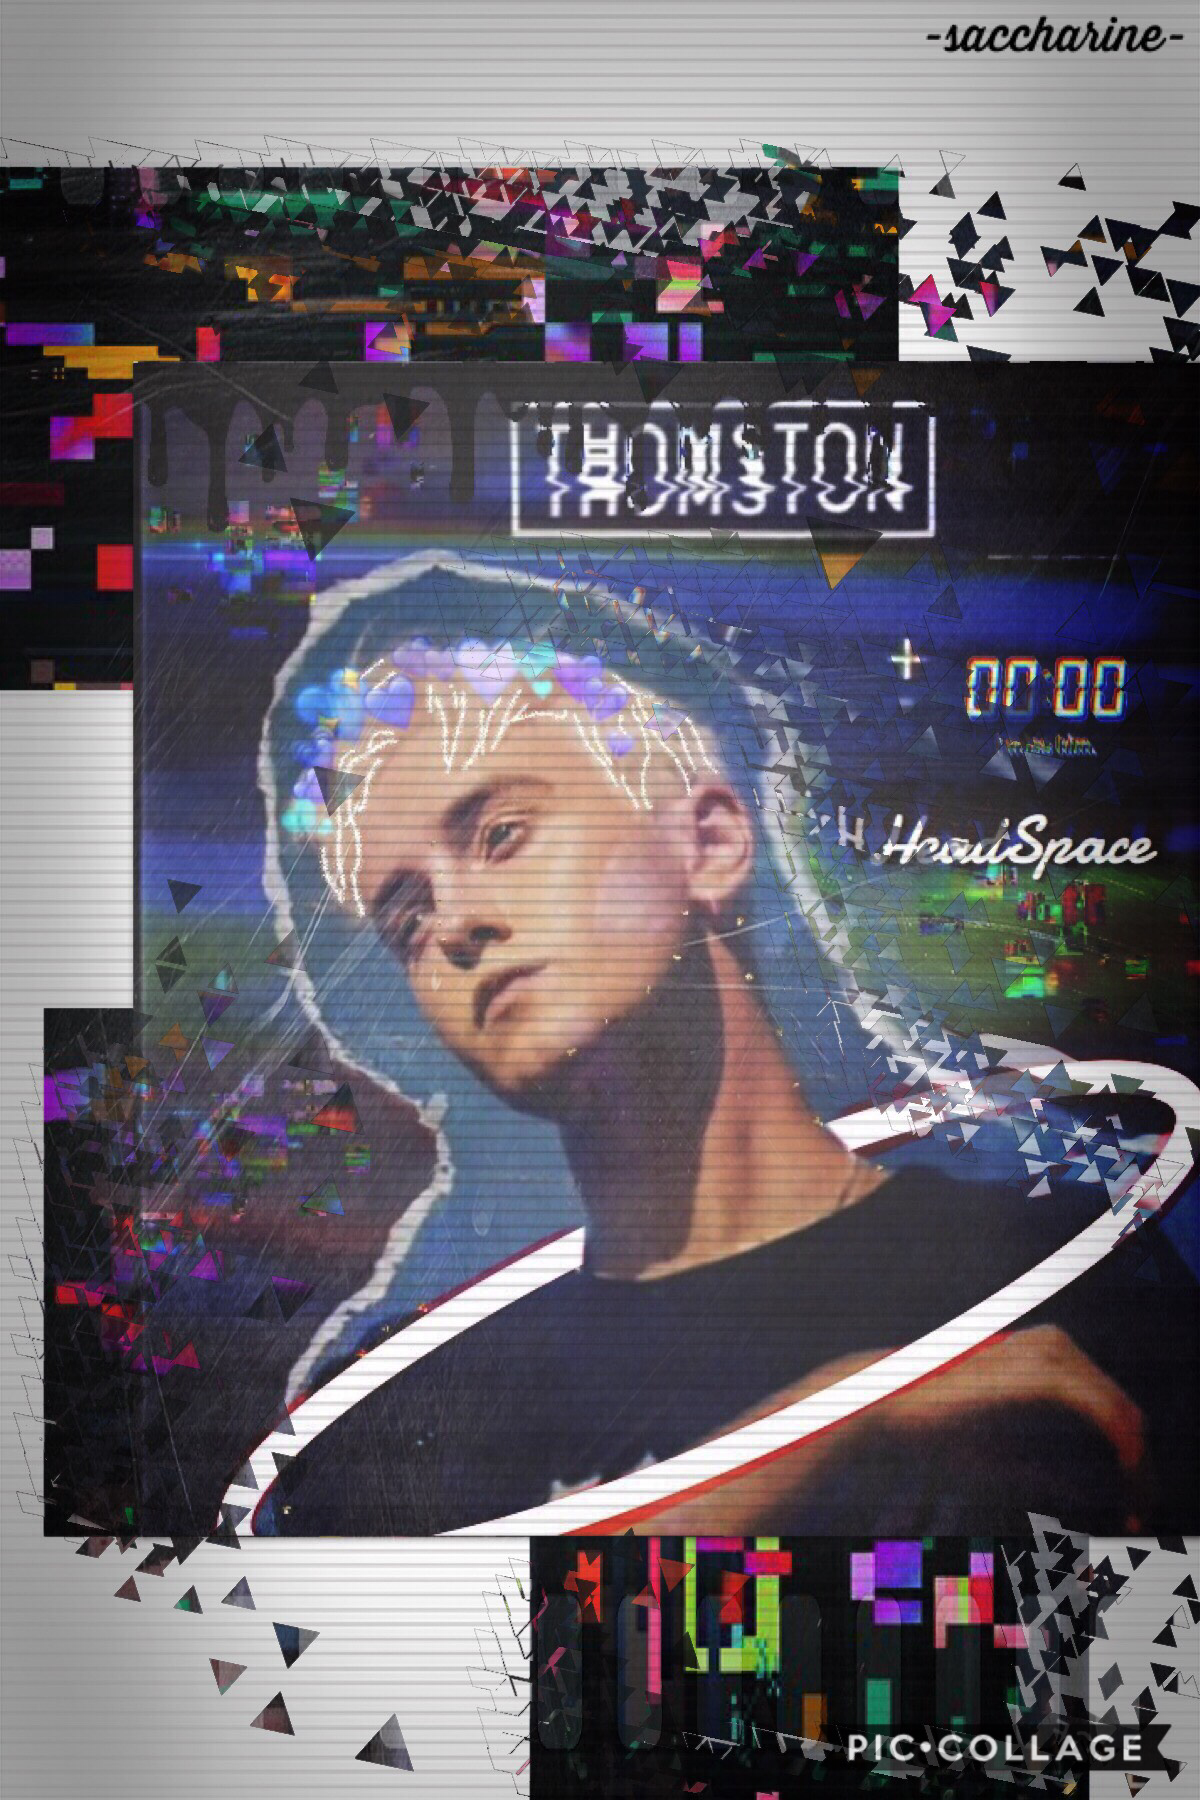 💜Hello💜 My beautiful people. I know I have been inactive lately. Sorry. But anyways, HeadSpace by Thomston is amazing. Here is an edit of it.✨